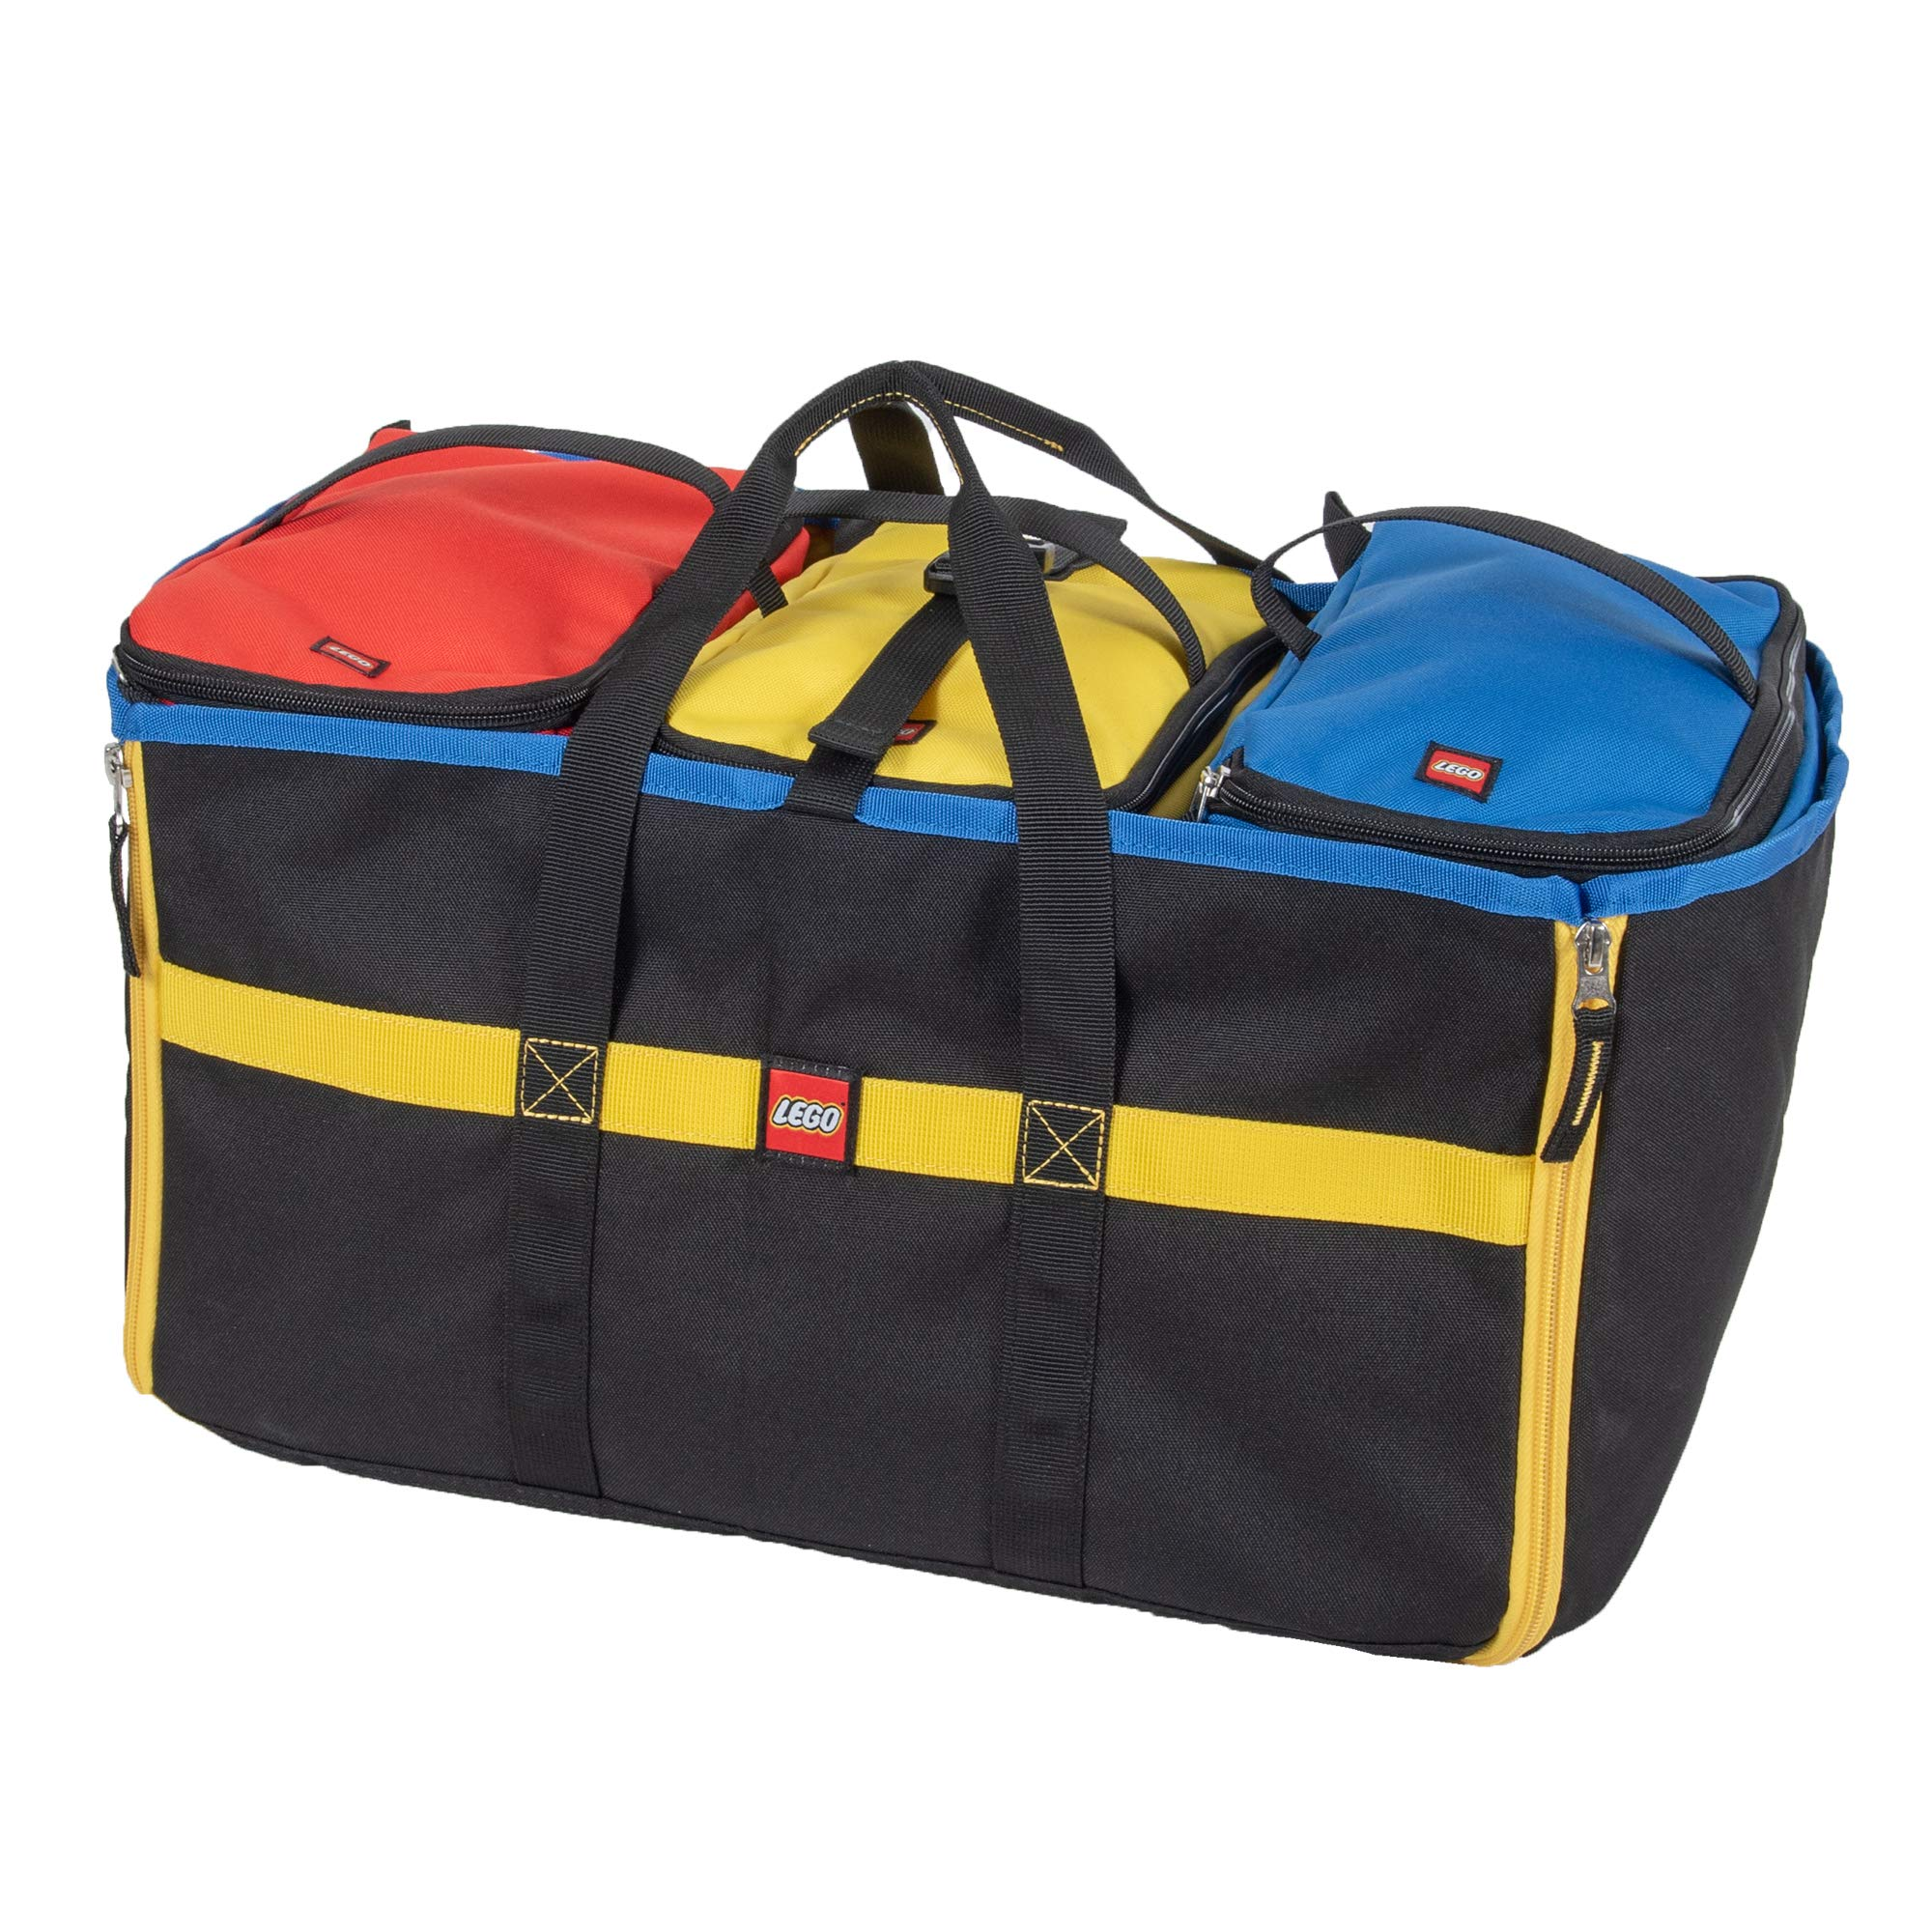 LEGO Storage 4-Piece Tote and Play Mat by LEGO